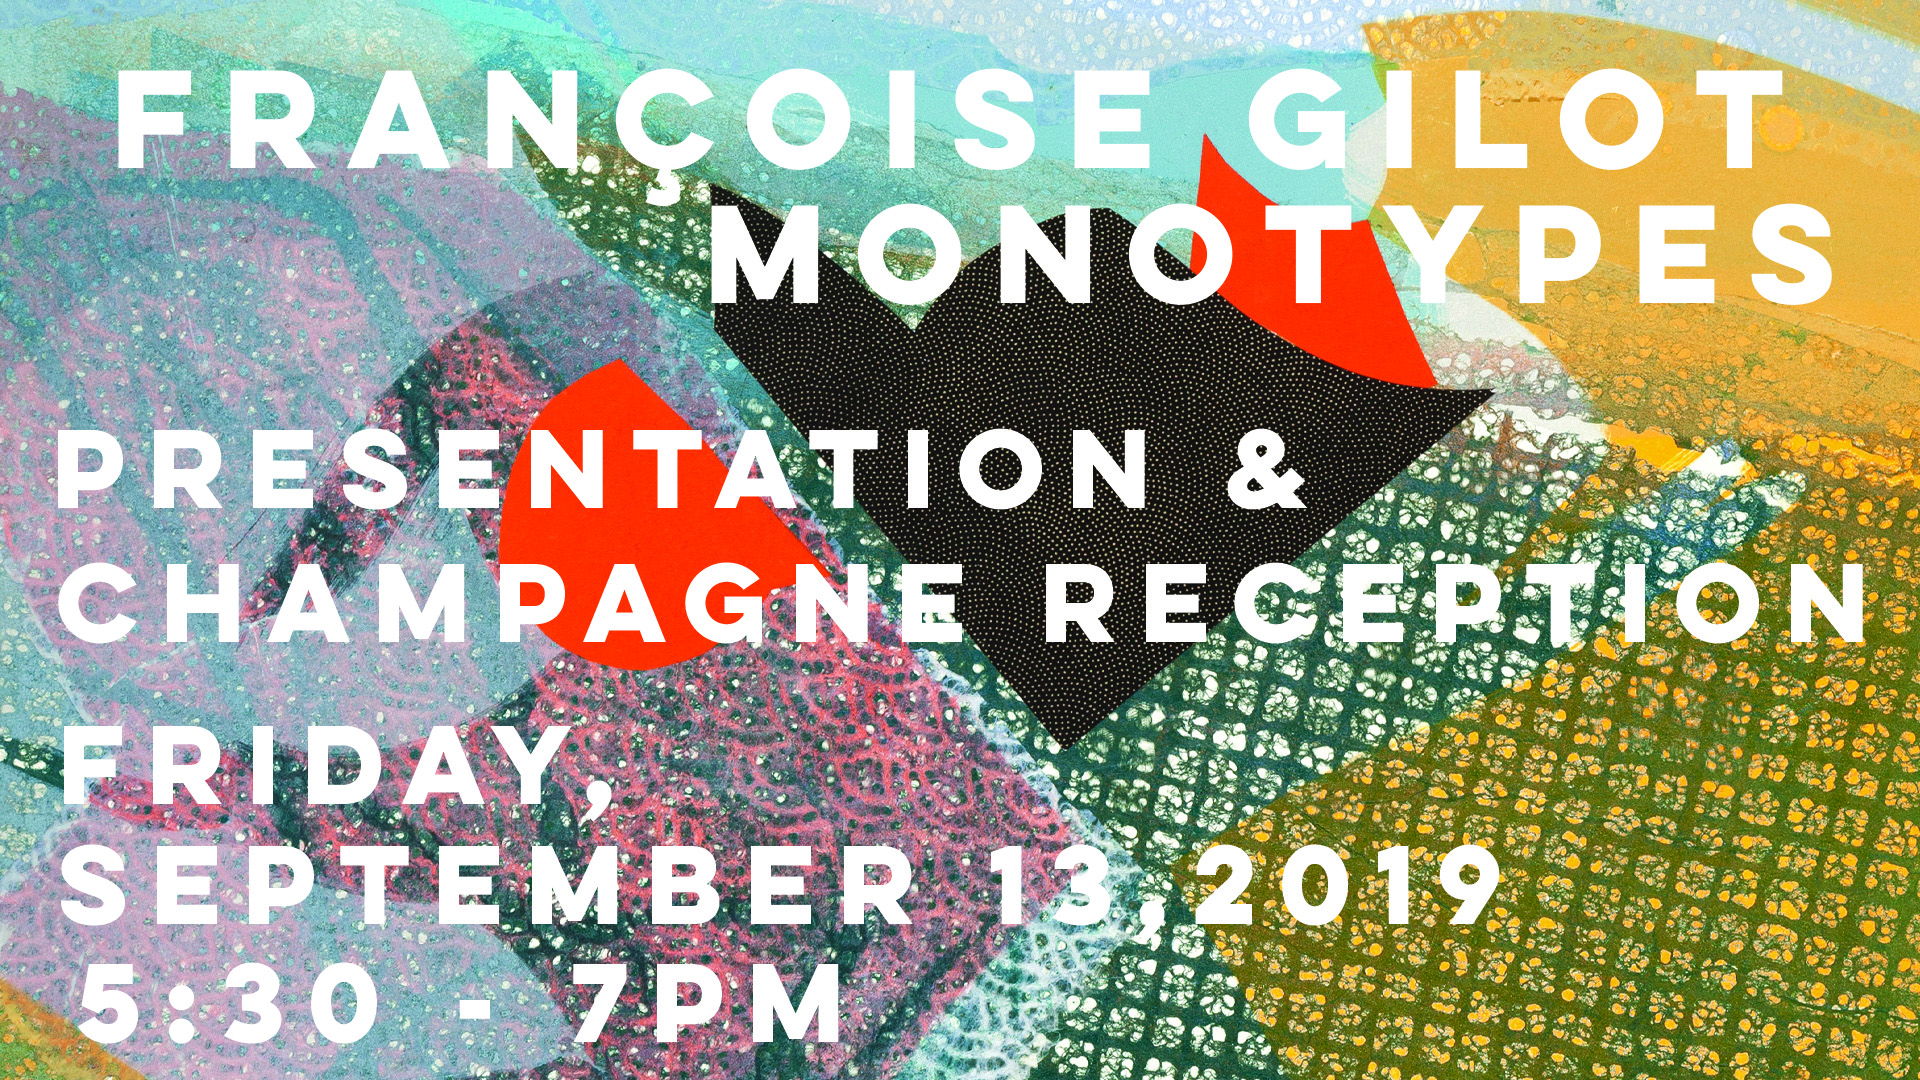 Françoise Gilot Monotypes Presentation &Champagne Reception - Friday, September 13, 2019, 5:30 - 7pm